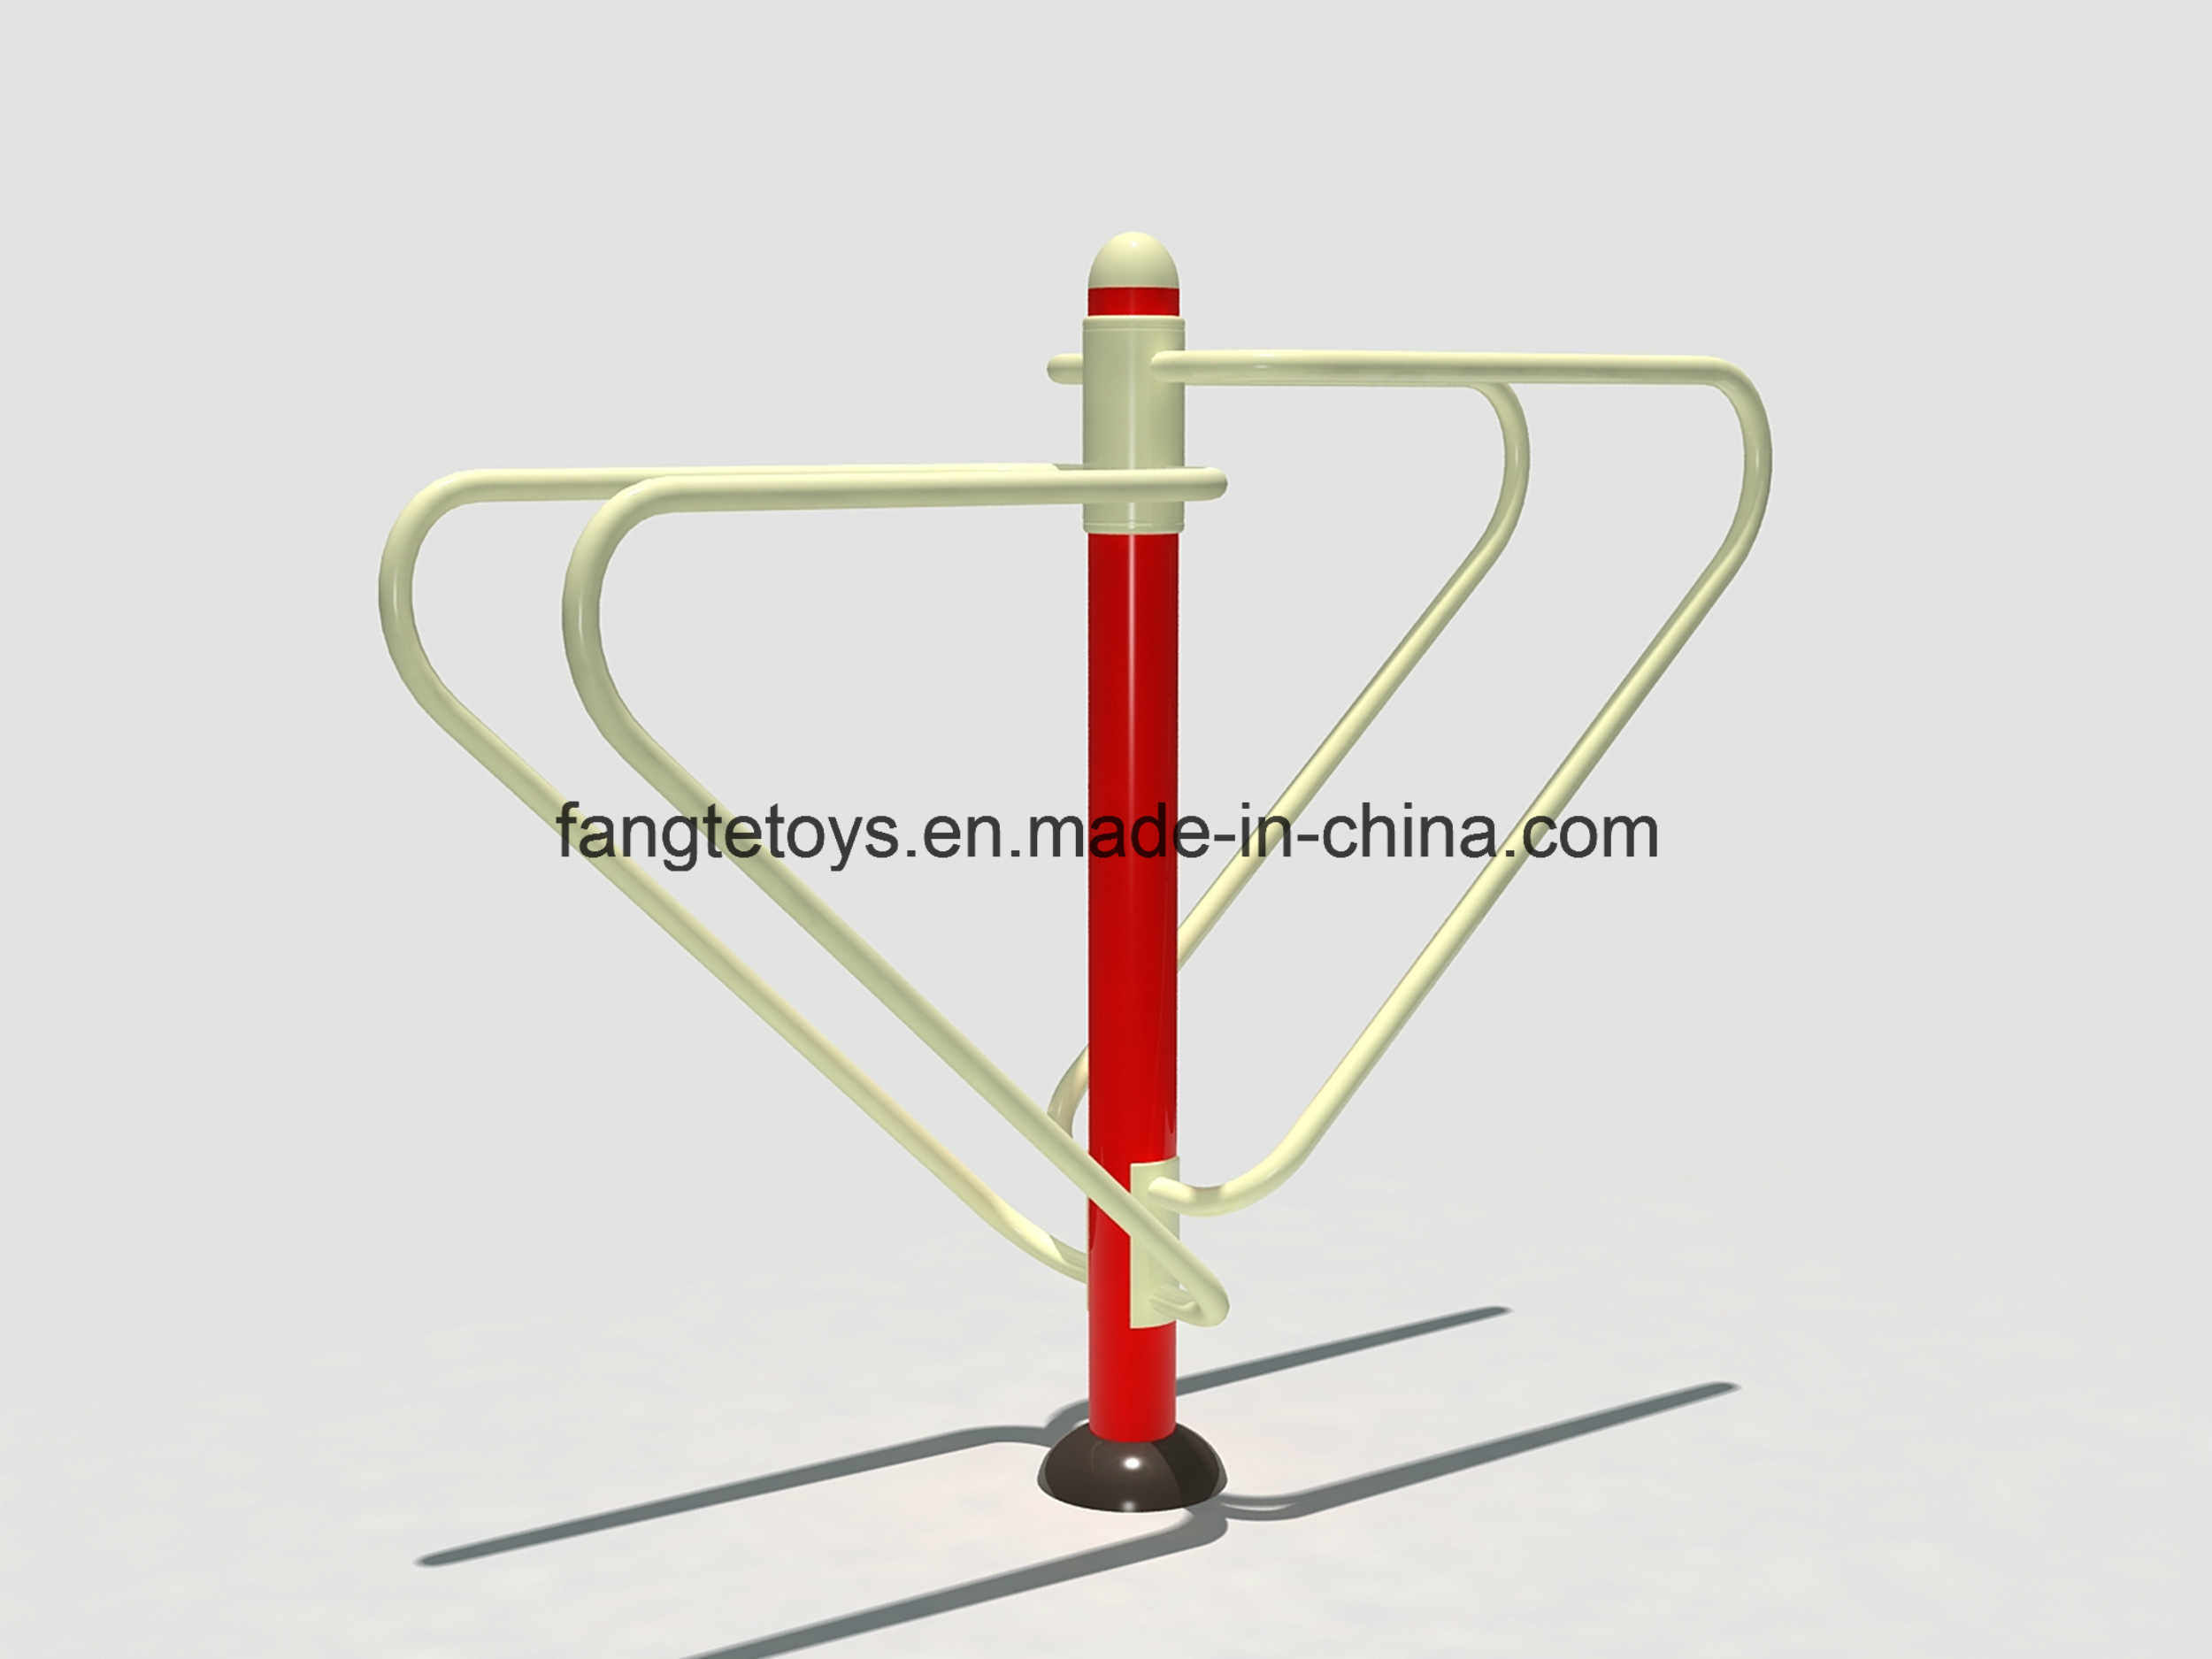 High Quality Outdoor Fitness Equipment Parallel Bars Outdoor Body Building Equipment FT-Of313